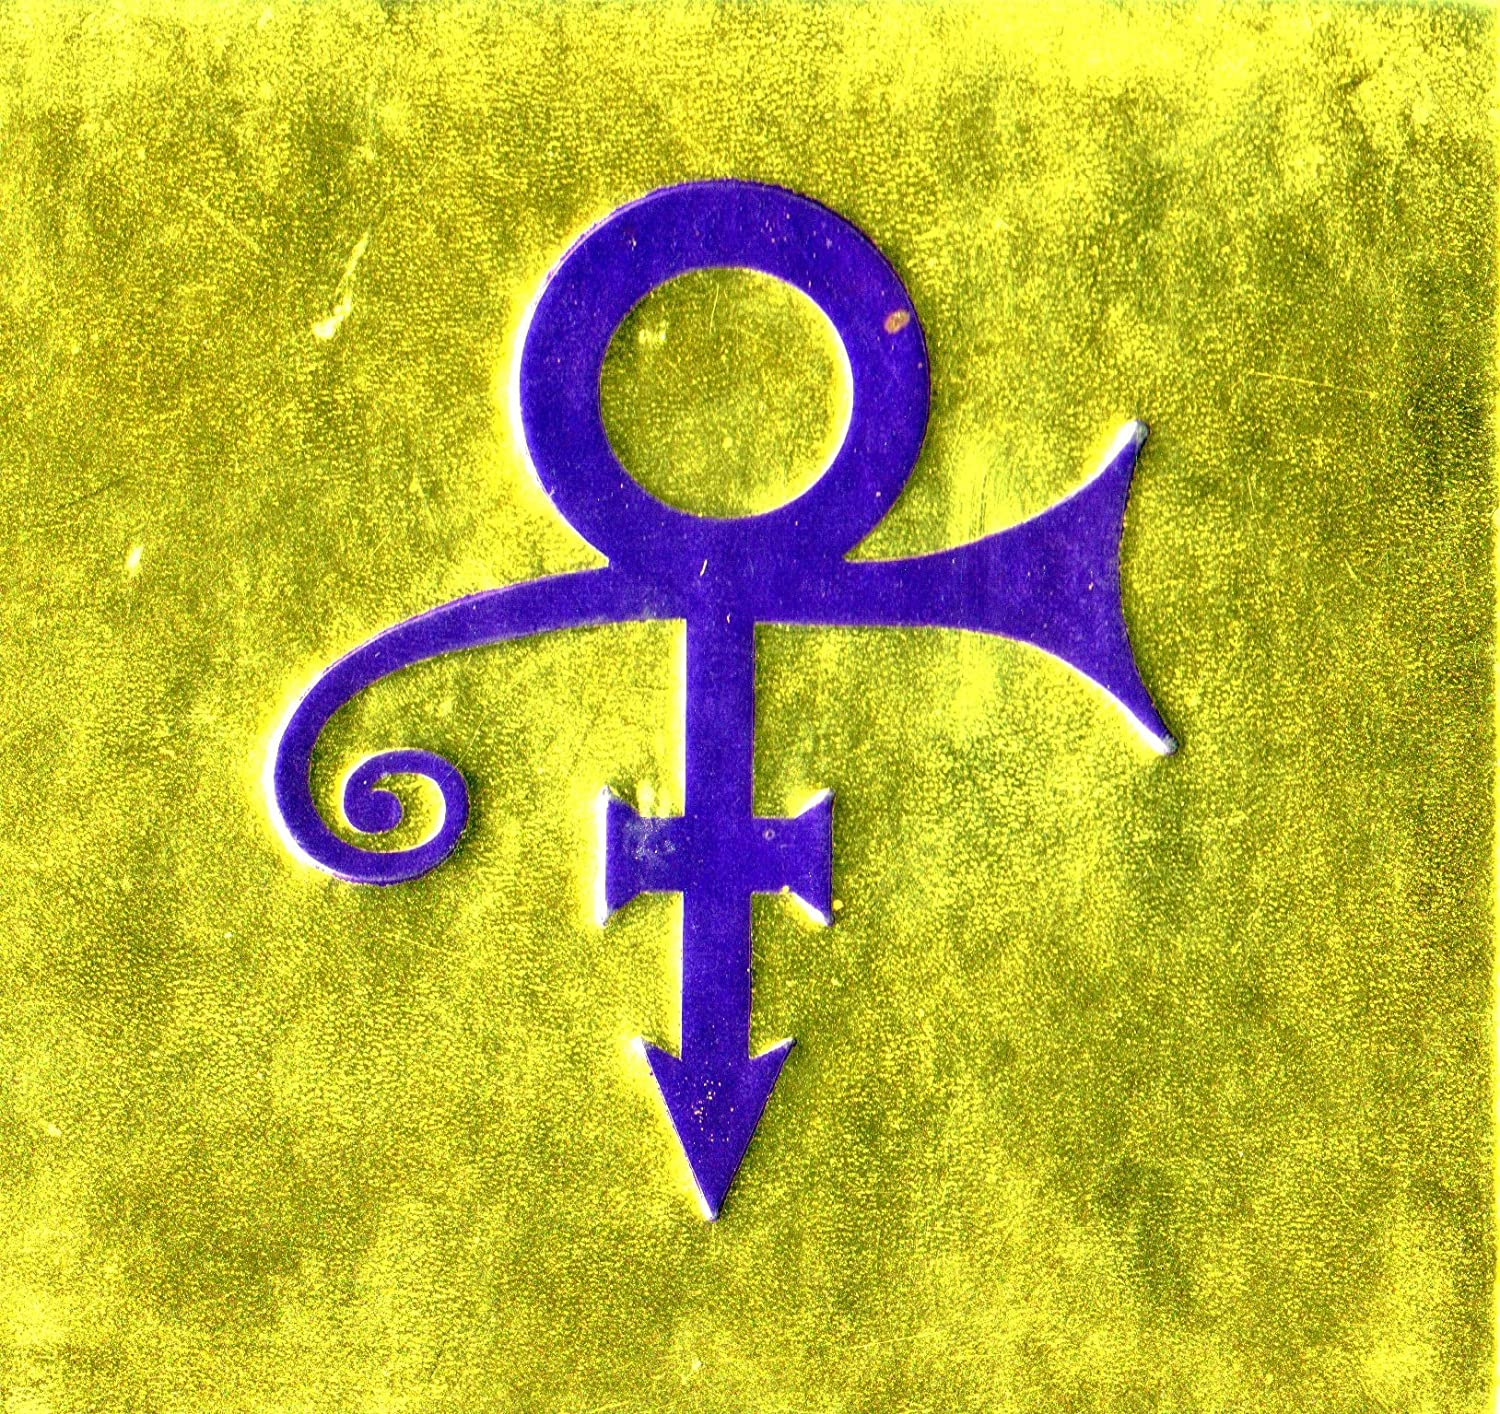 Prince the new power generaaion androgynous love symbol album prince the new power generaaion androgynous love symbol album amazon music biocorpaavc